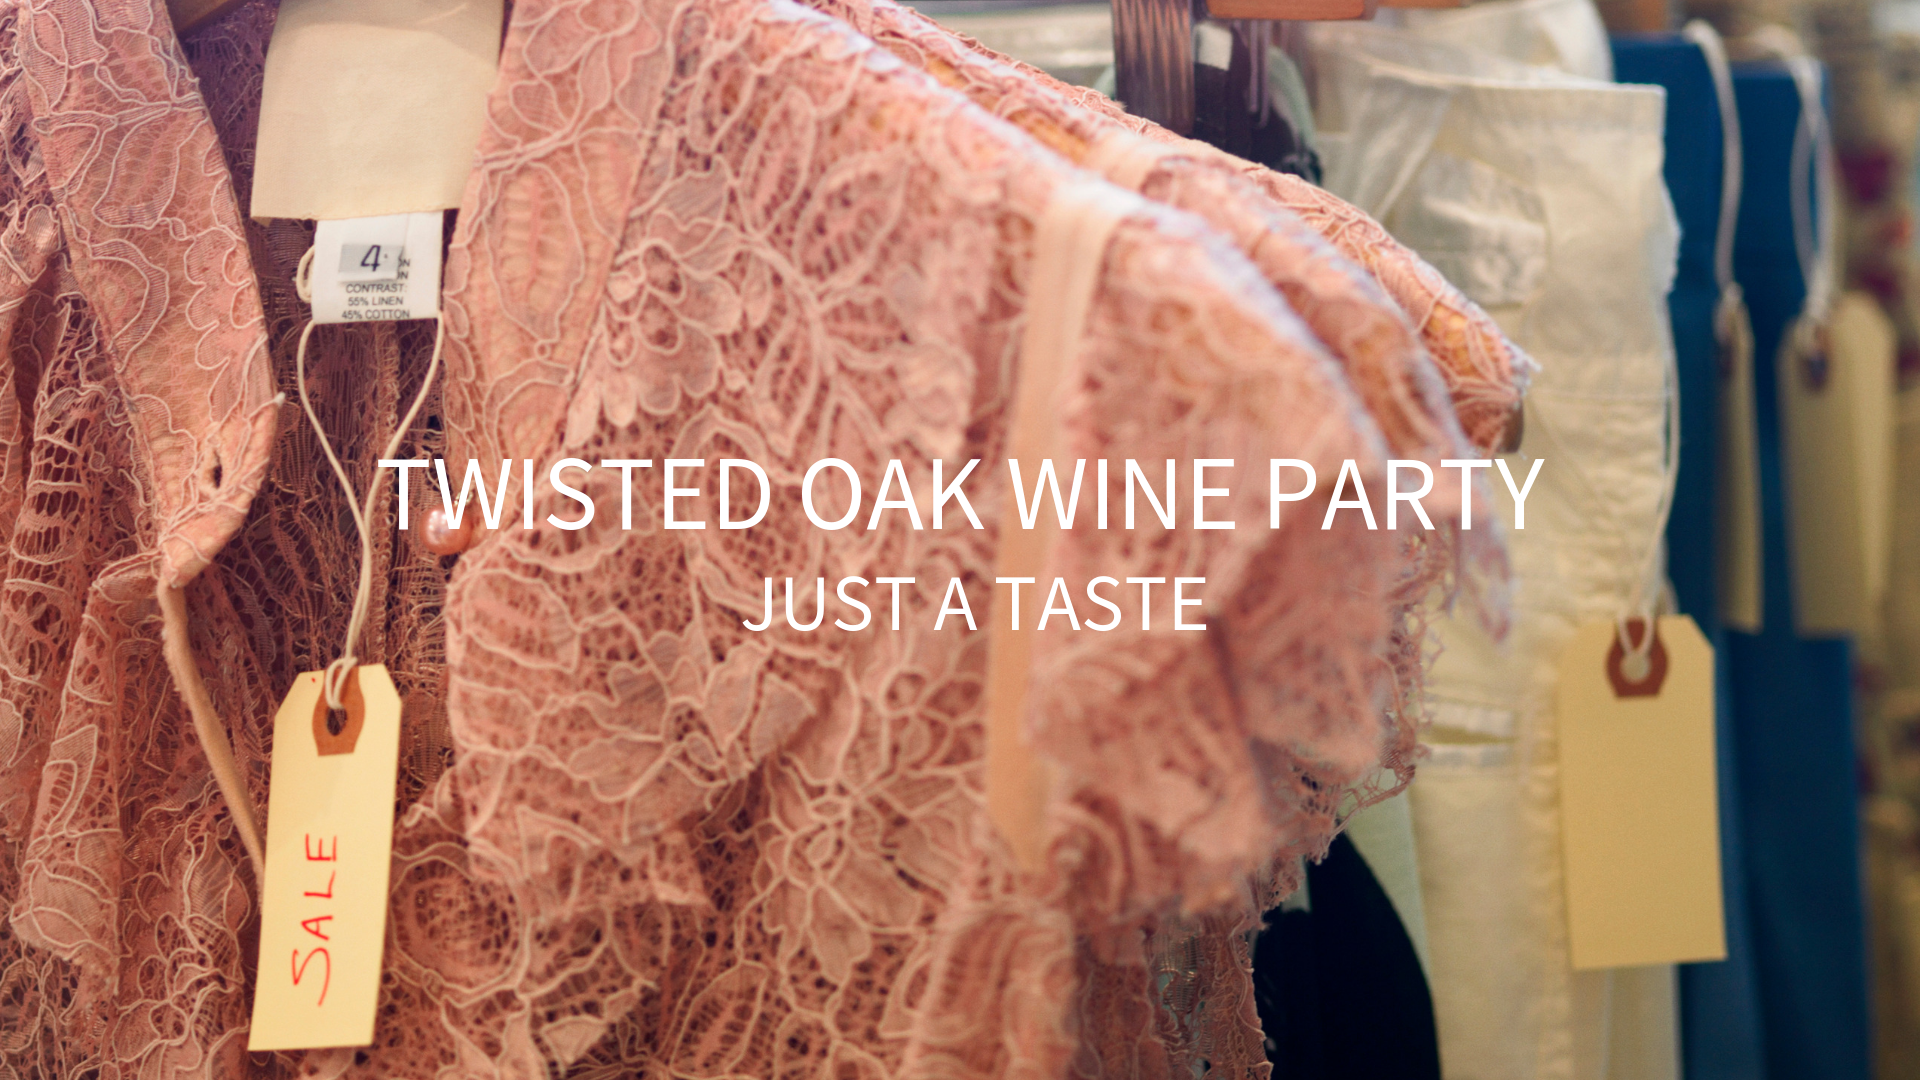 We're partnering with Twisted Oak Co. to throw a wine party. We'll have live music and, weather permitting, we'll have a wine garden set up outside. Come by and enjoy some delicious wine and treats, and try on some adorable clothes!  https://twistedoakandcompany.business.site/